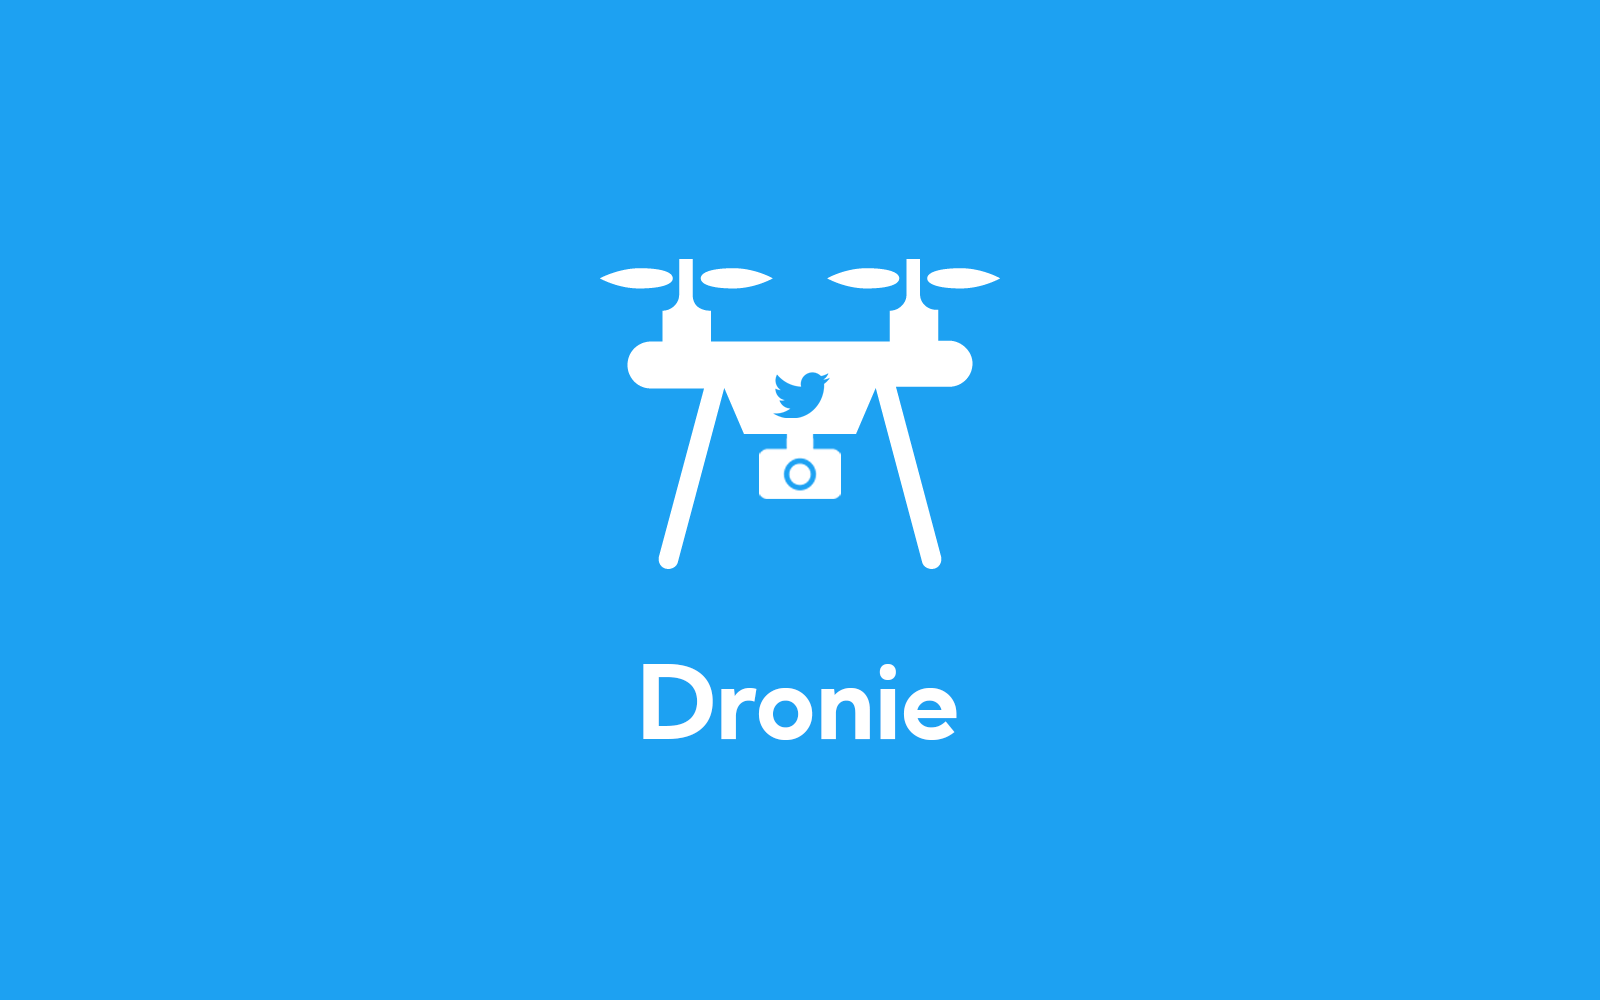 Dronie icon on Twitter blue background